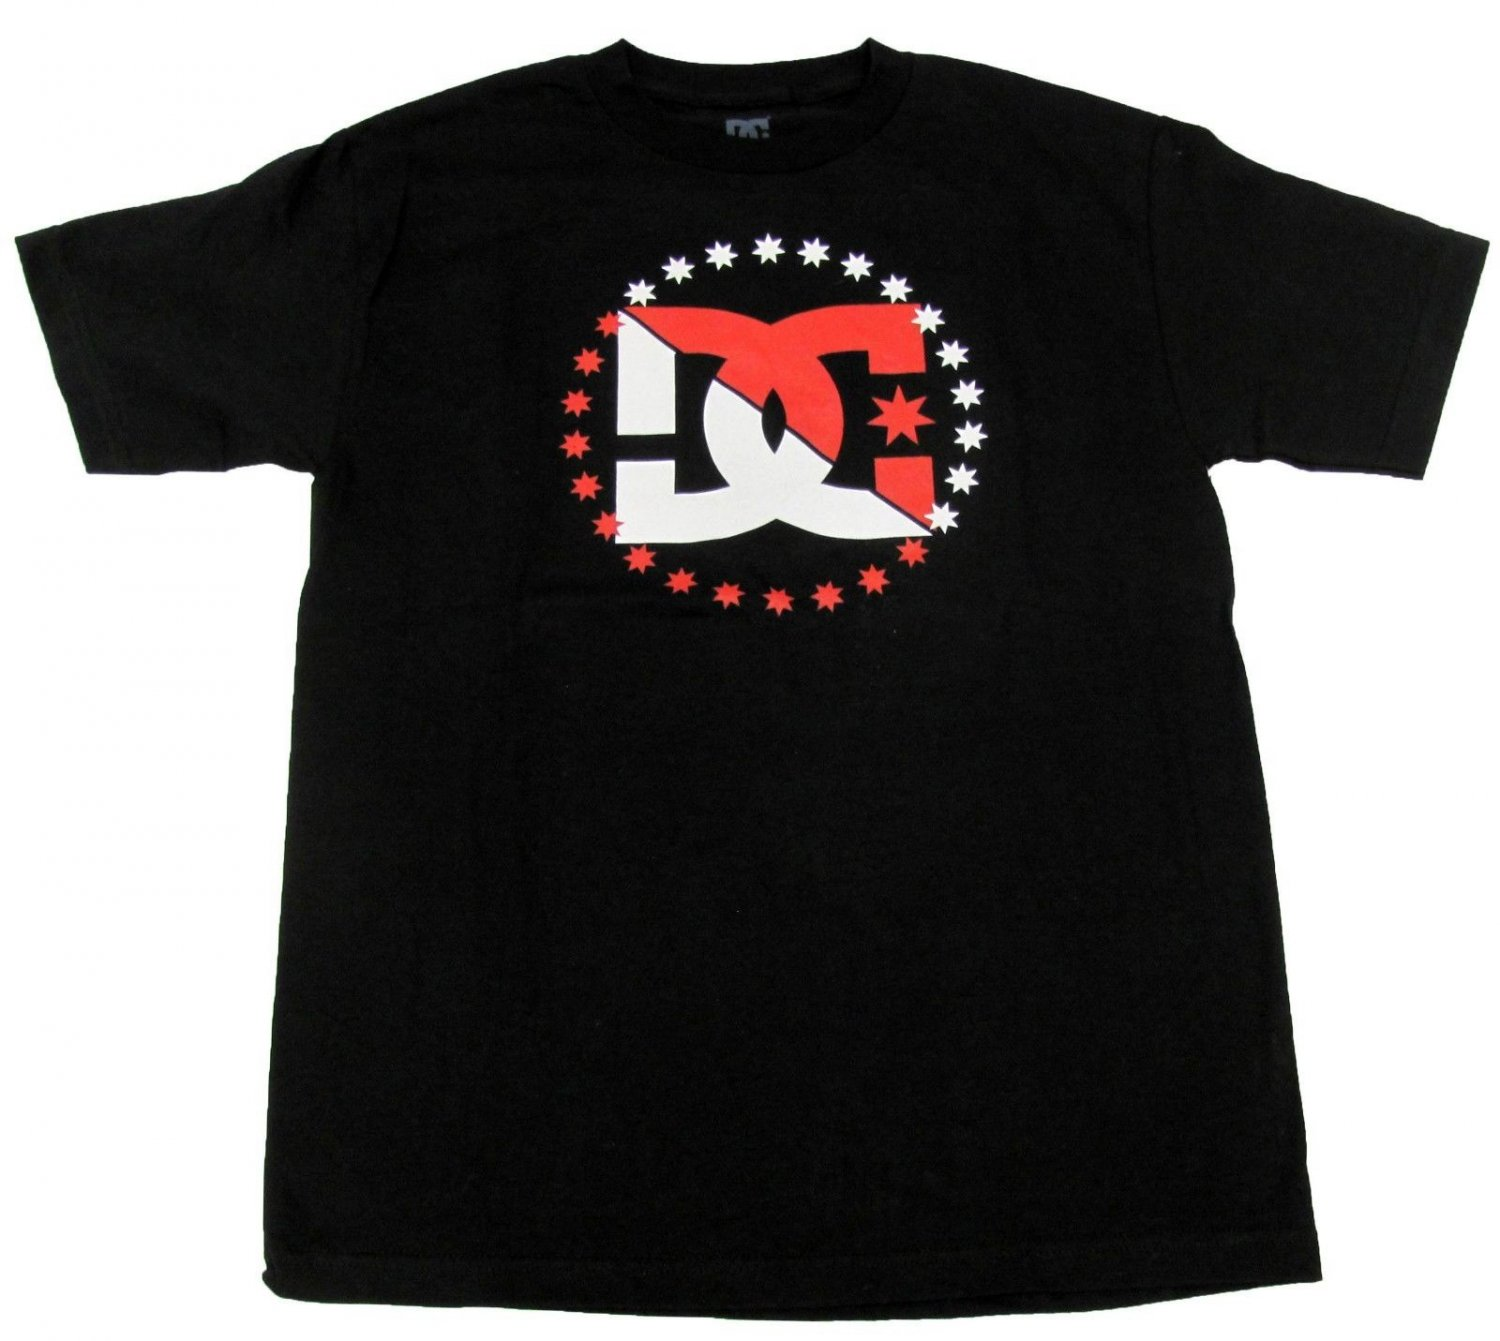 DC Shoes Mens M Power Move Tee Shirt Black T-shirt with Red and White Logo Medium